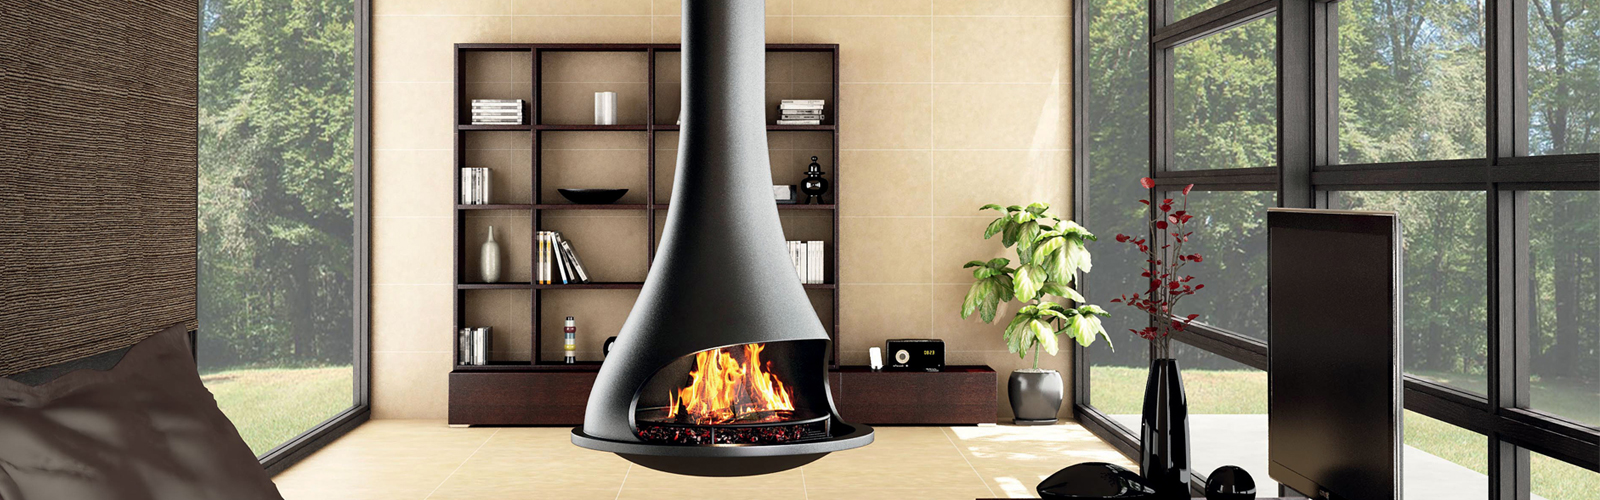 stove indoor standing alone stand fires freestanding gas contemporary decoration propane natural fireplace free